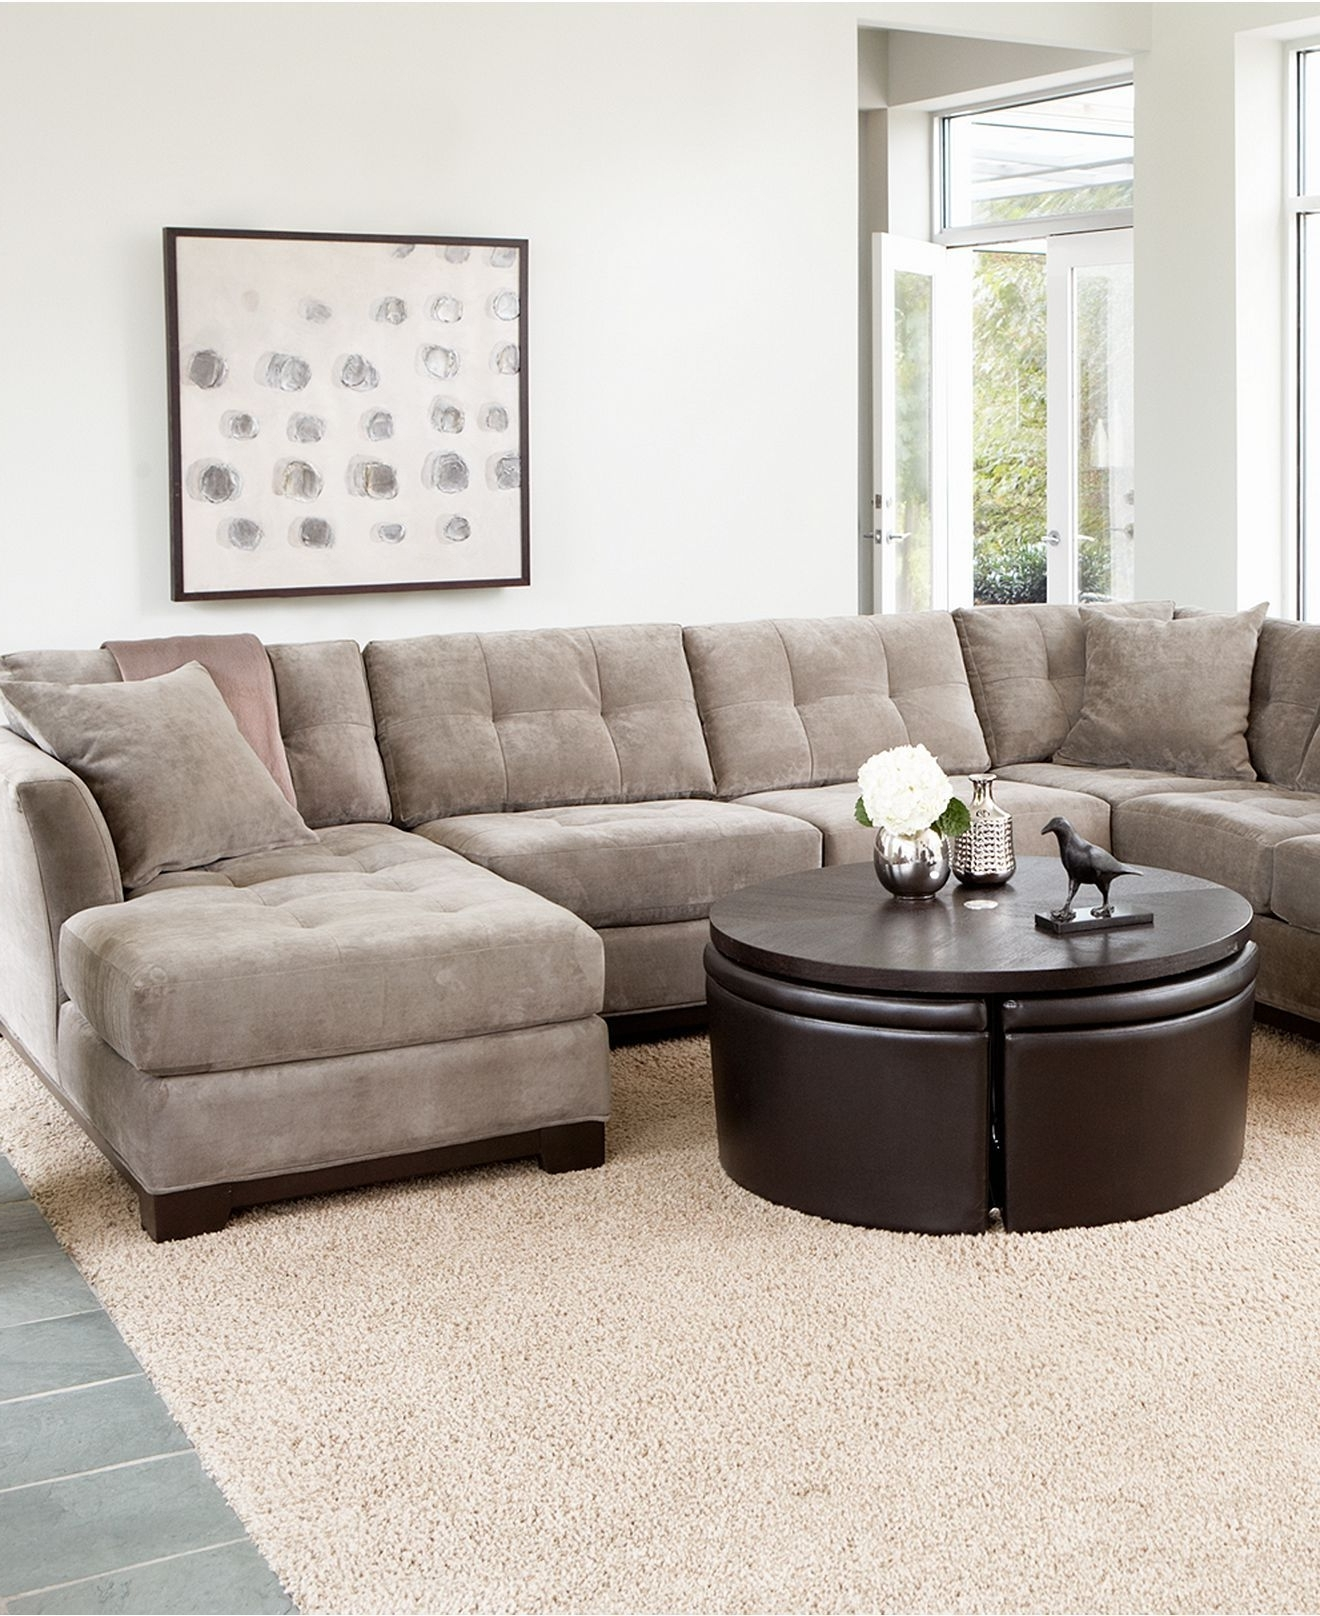 Macys Sectional Sofas Inside Latest Elliot Fabric Sectional Sofa Collection – Sectionals – Furniture (View 11 of 20)